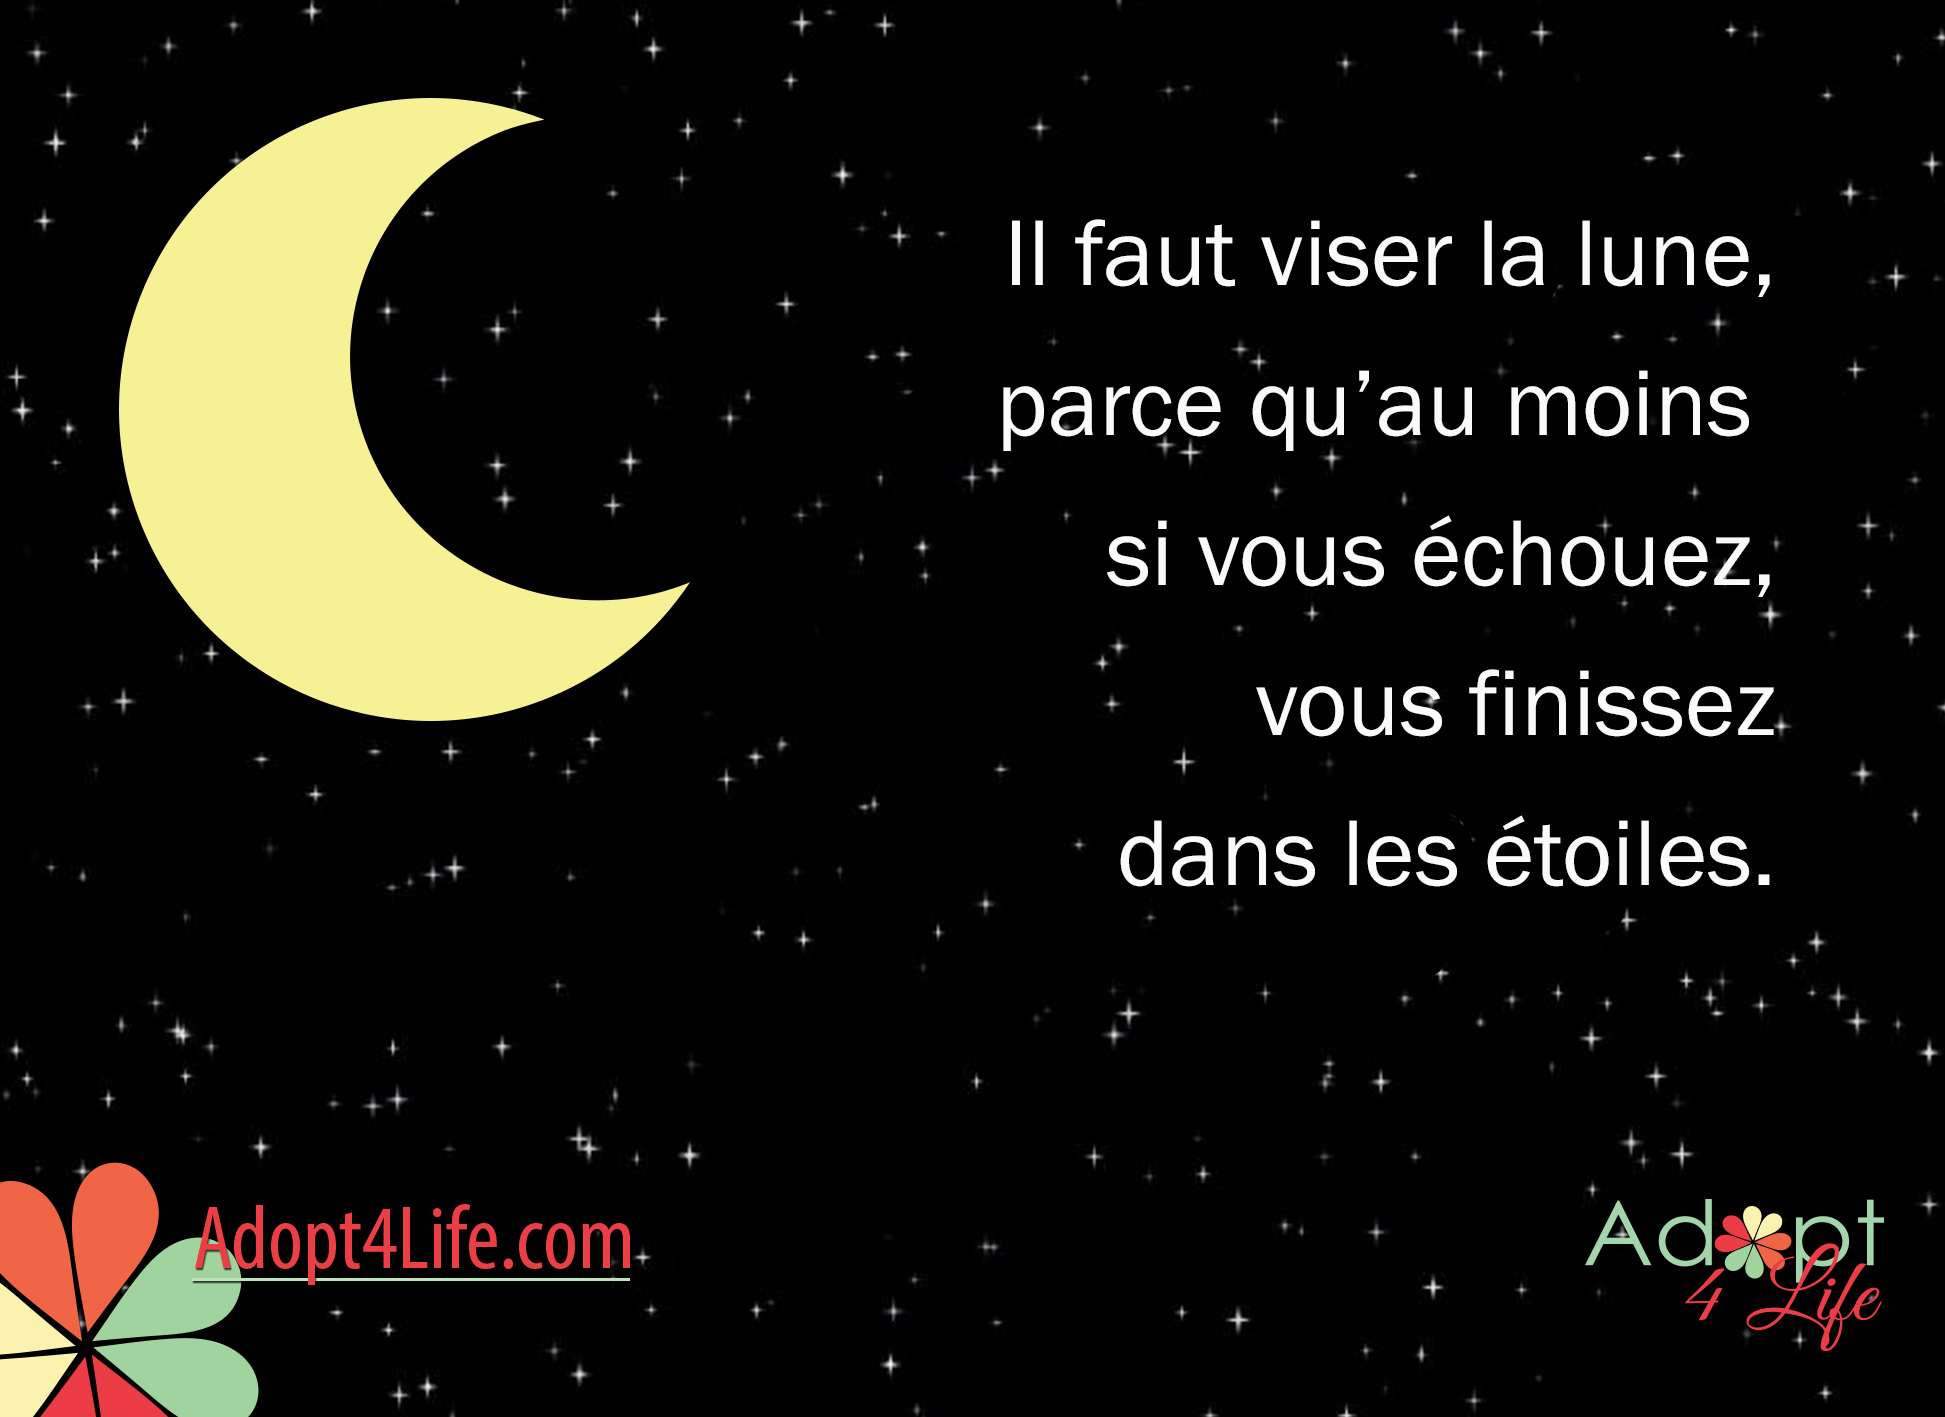 Facebook_AdoptionQuote_French_023_Dec2014_png.png